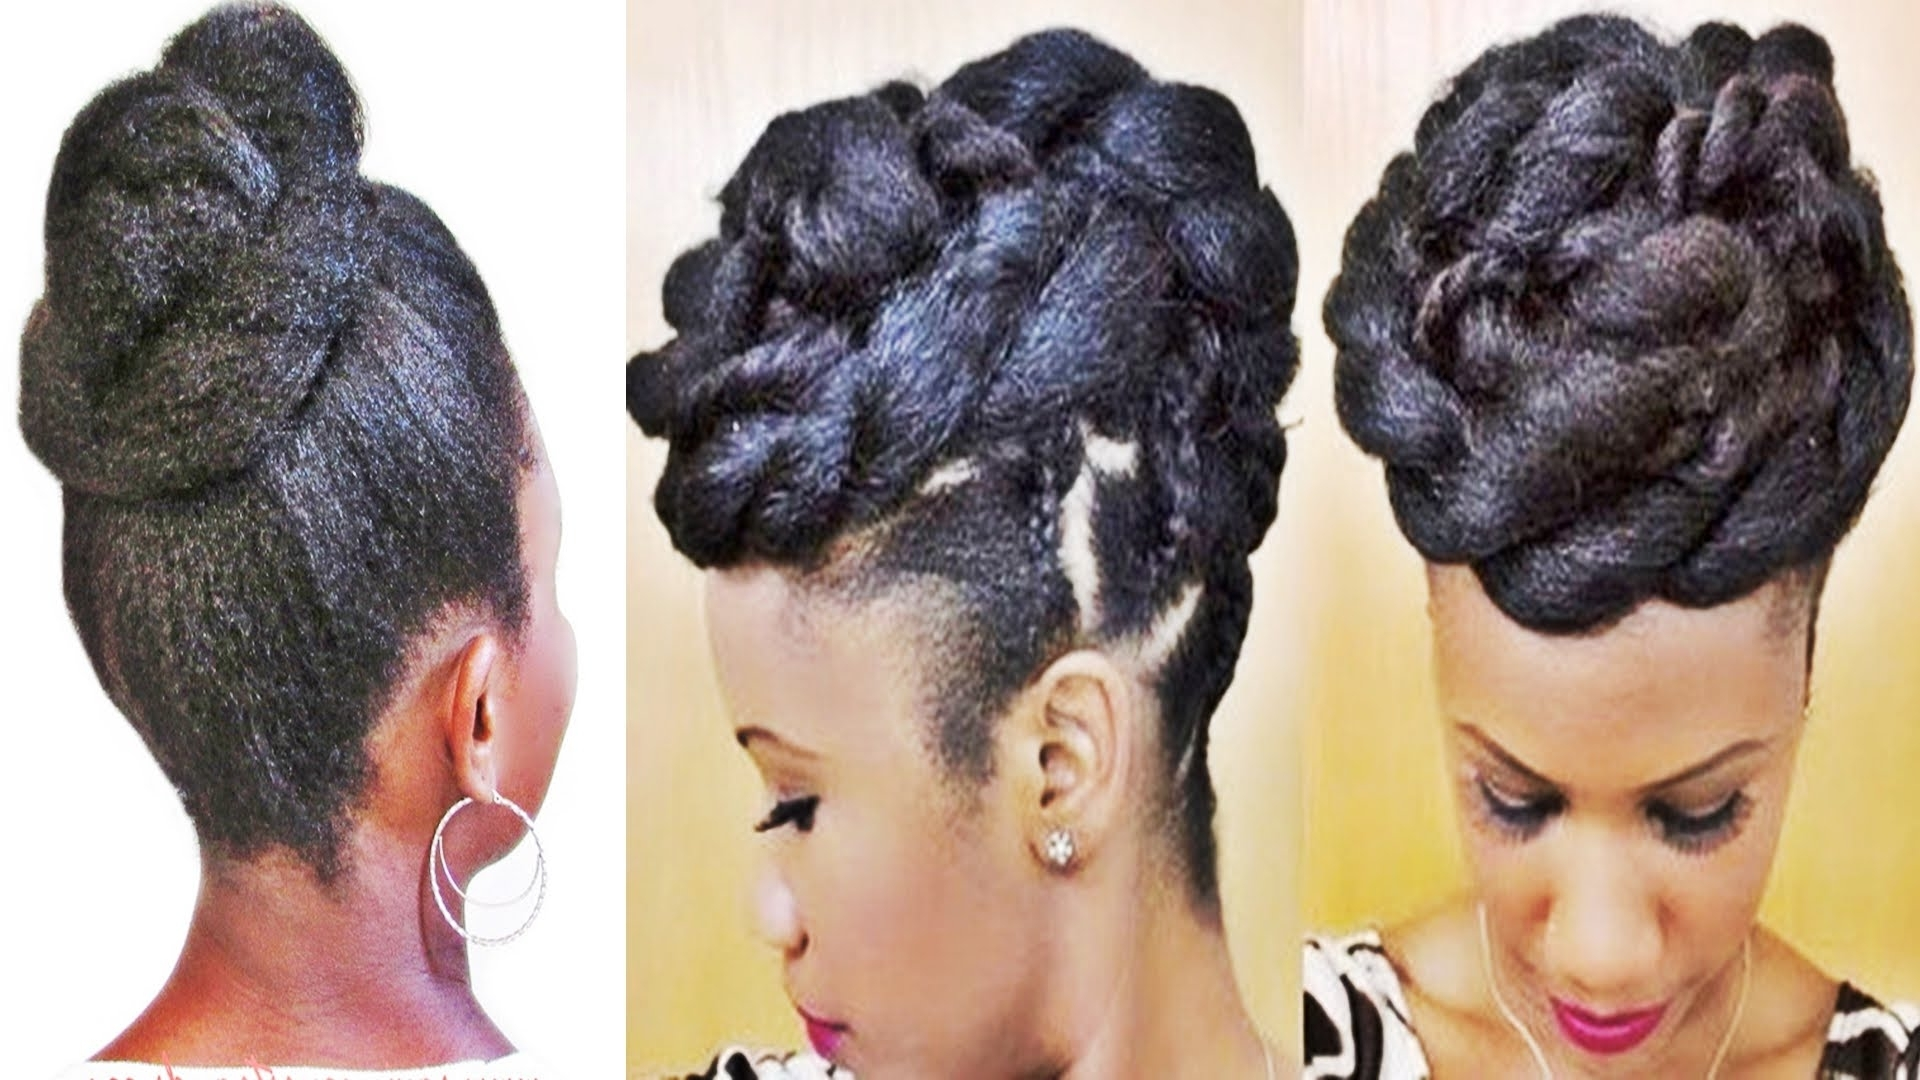 Braids And Twists Updo Hairstyle For Black Women – Youtube In Knot Twist Updo Hairstyles (View 6 of 15)